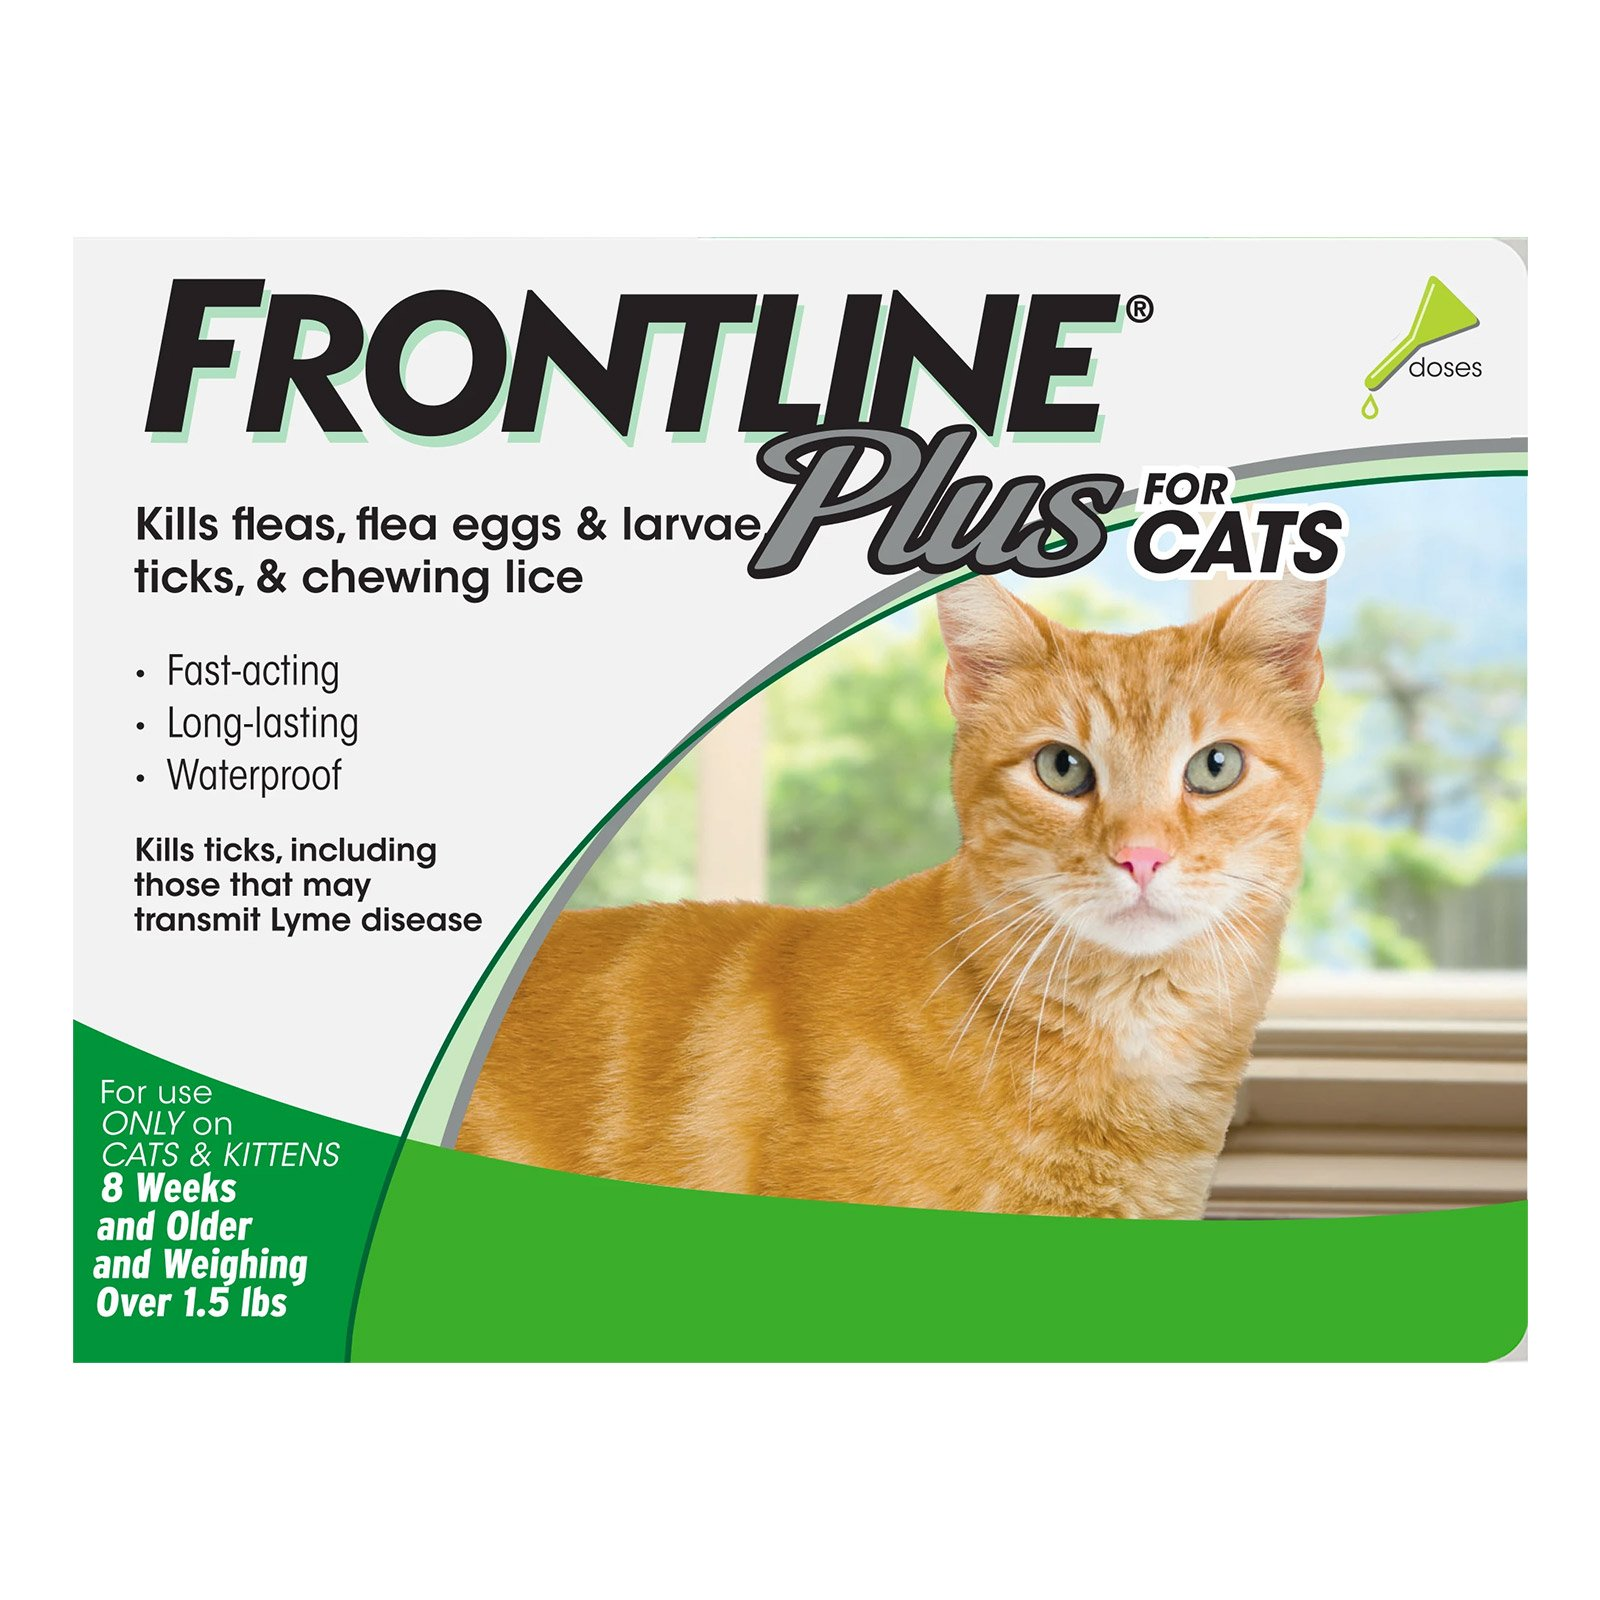 Frontline-Plus-For-Cats